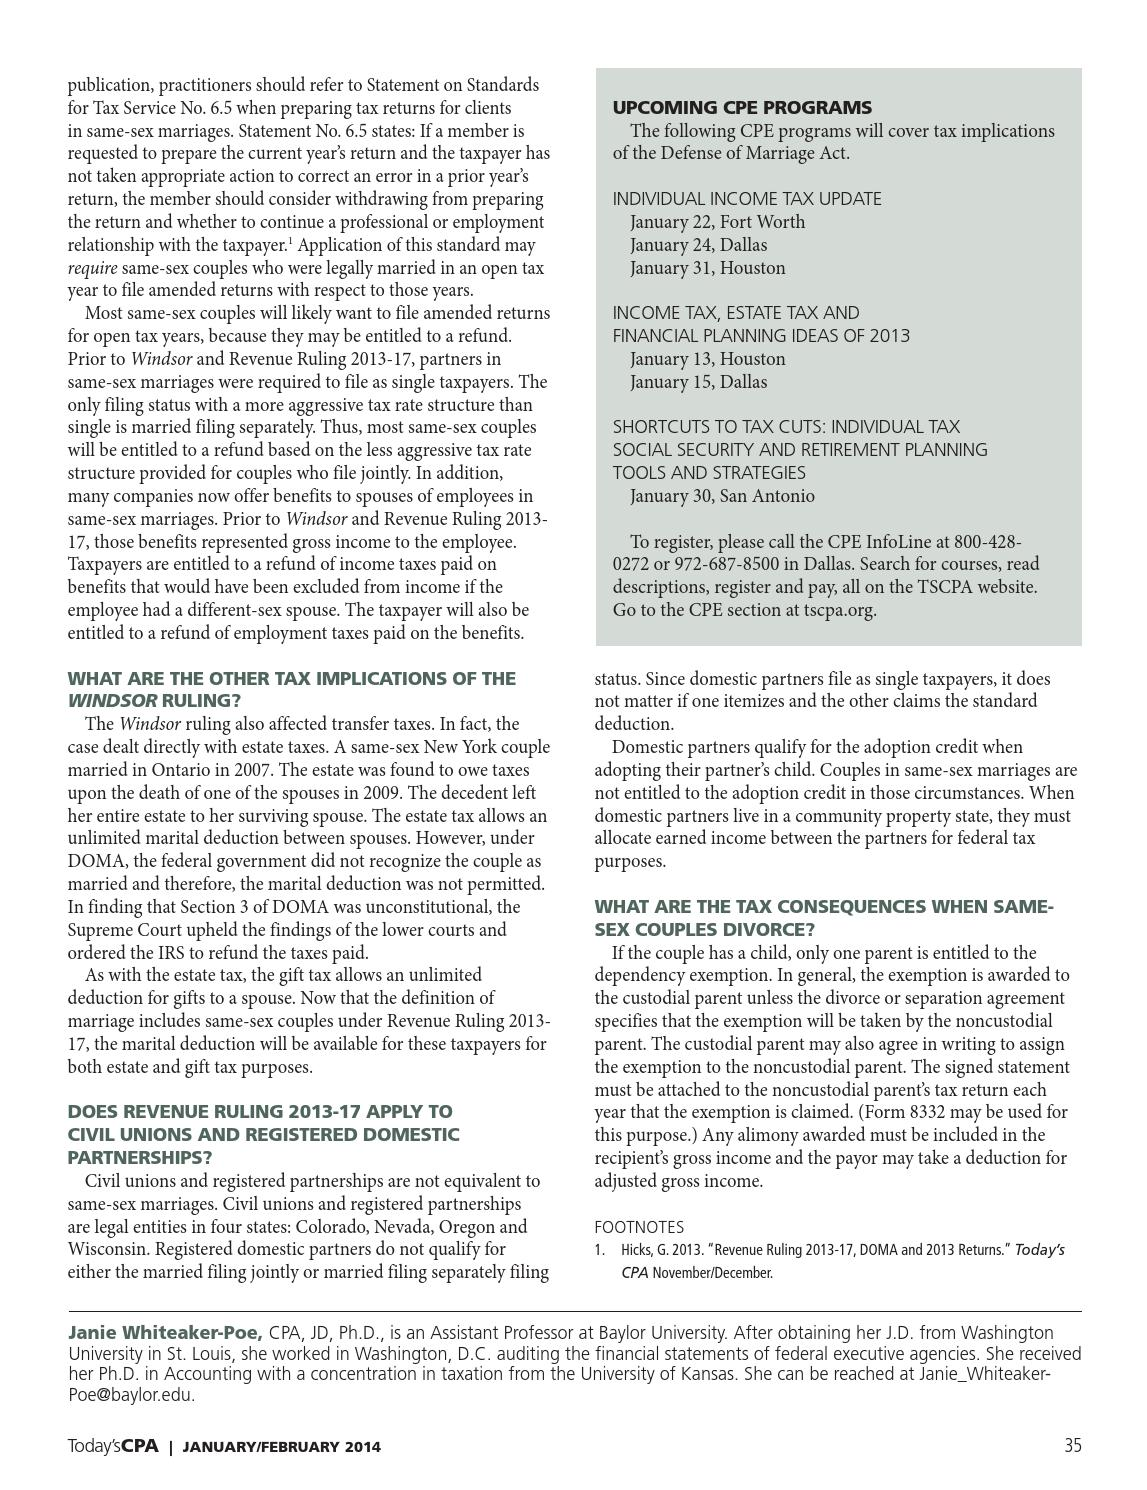 Today\'s CPA Jan/Feb 2014 by The Warren Group - issuu